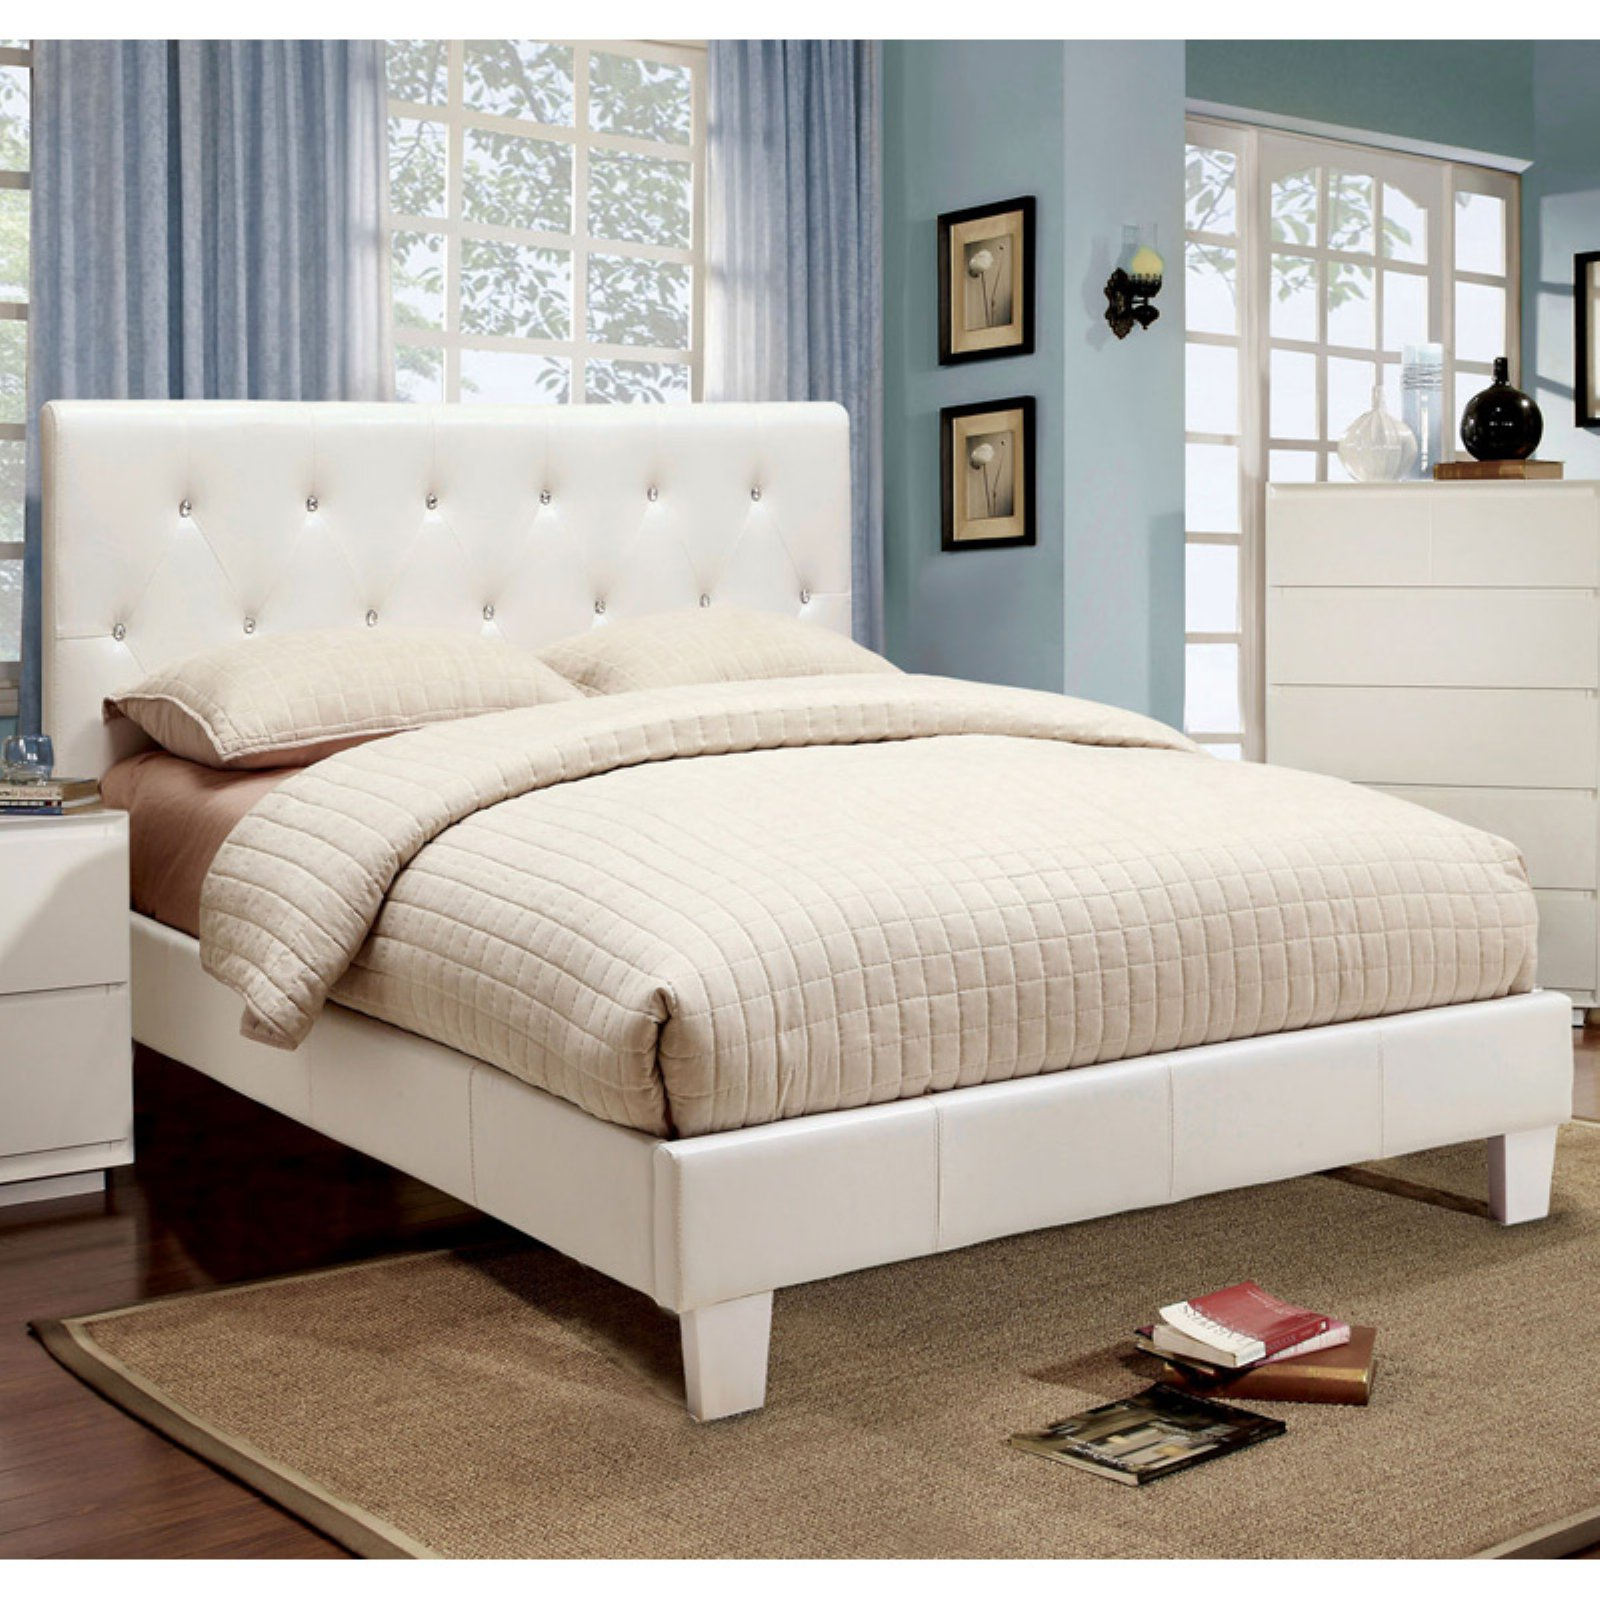 furniture of america avara rhinestone tufted platform bed. tufted beds